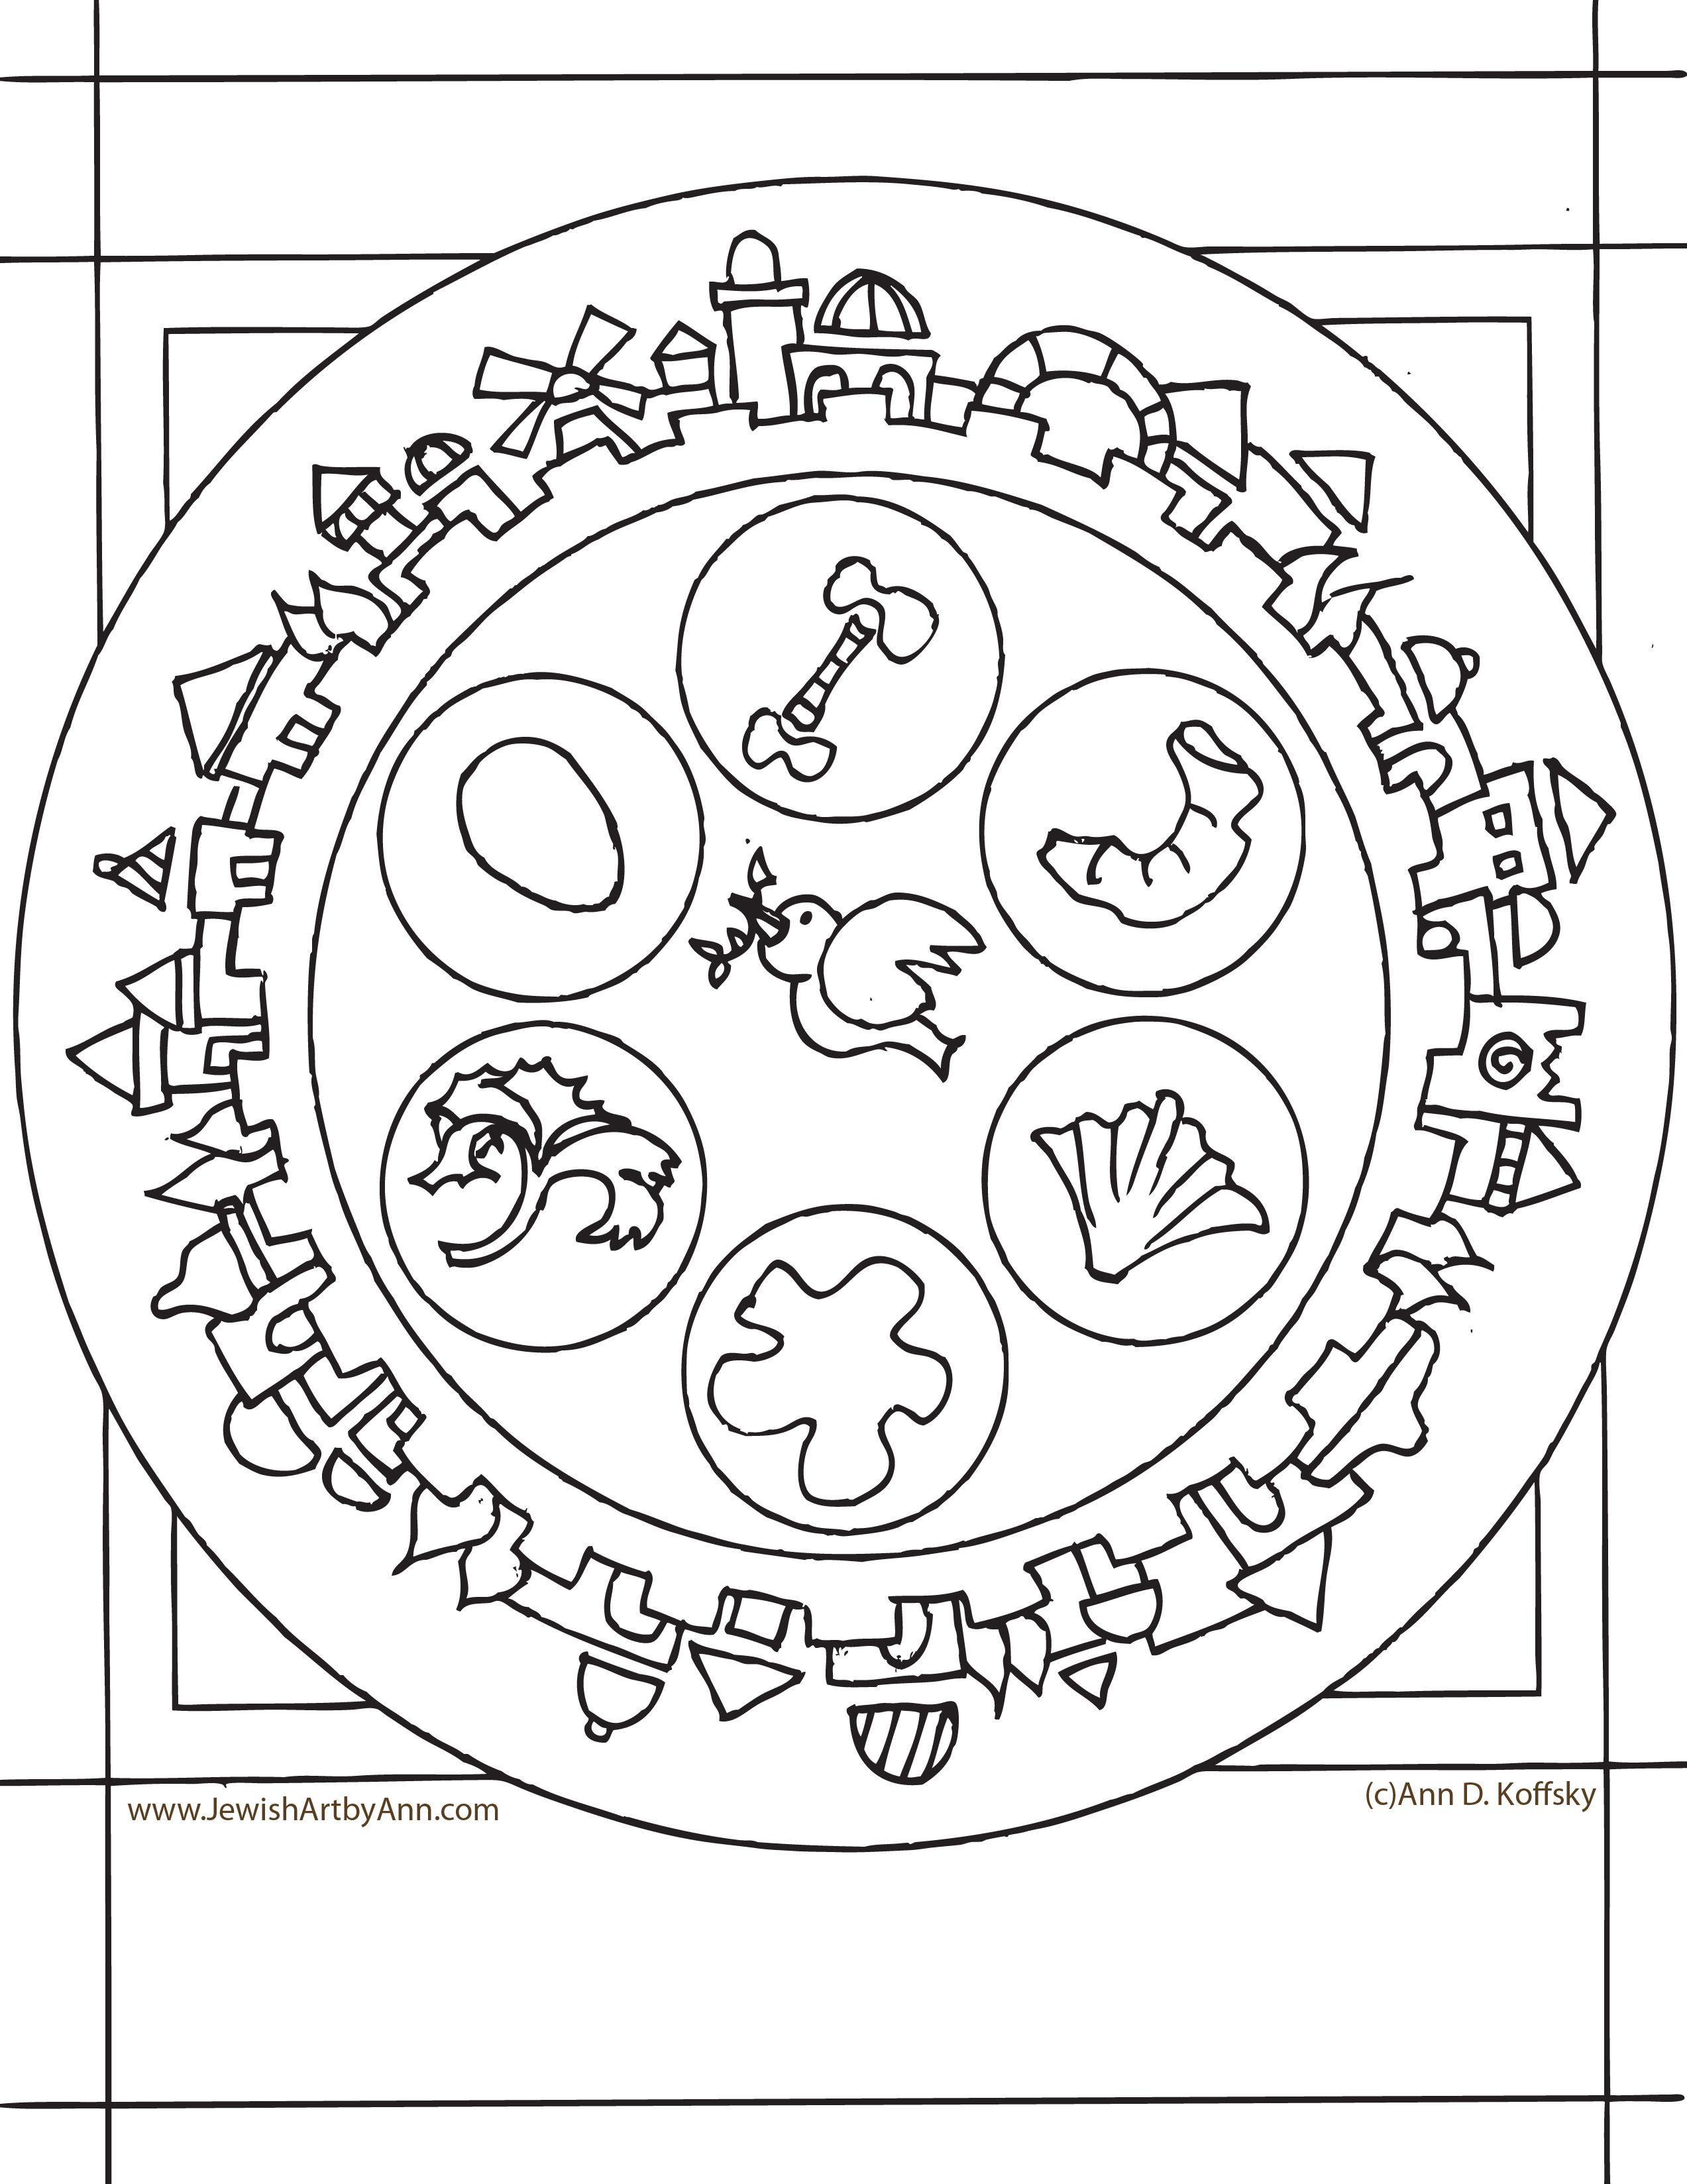 Passover Coloring Page Coloring Pages Free Coloring Pages Free Printable Coloring Pages